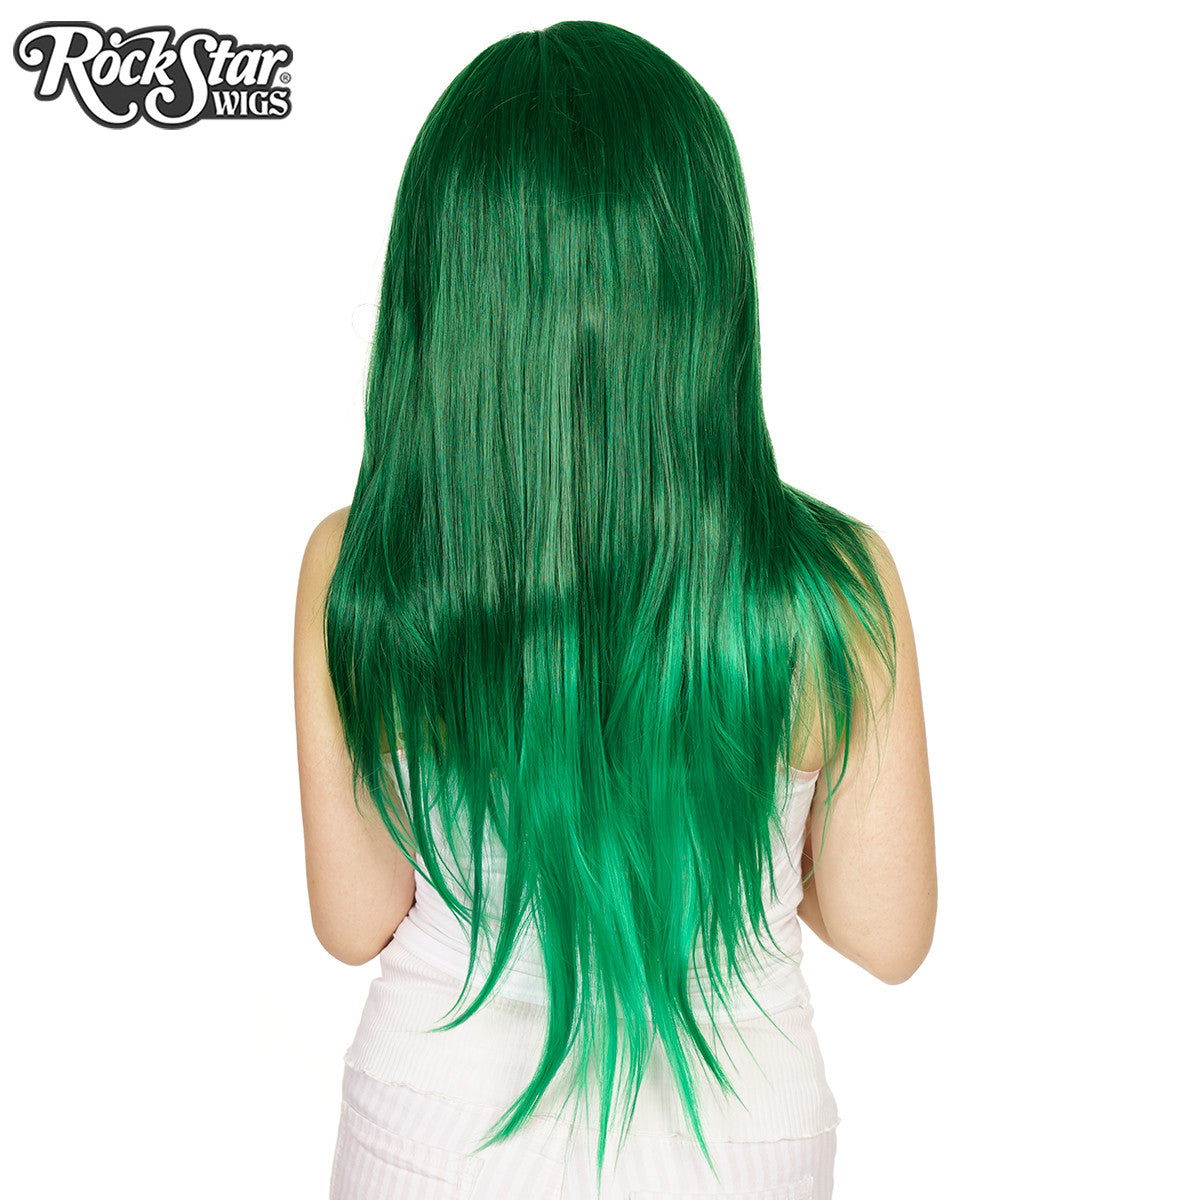 RockStar Wigs® <br> Ombre Alexa™ Collection - Forest Green Fade -00199